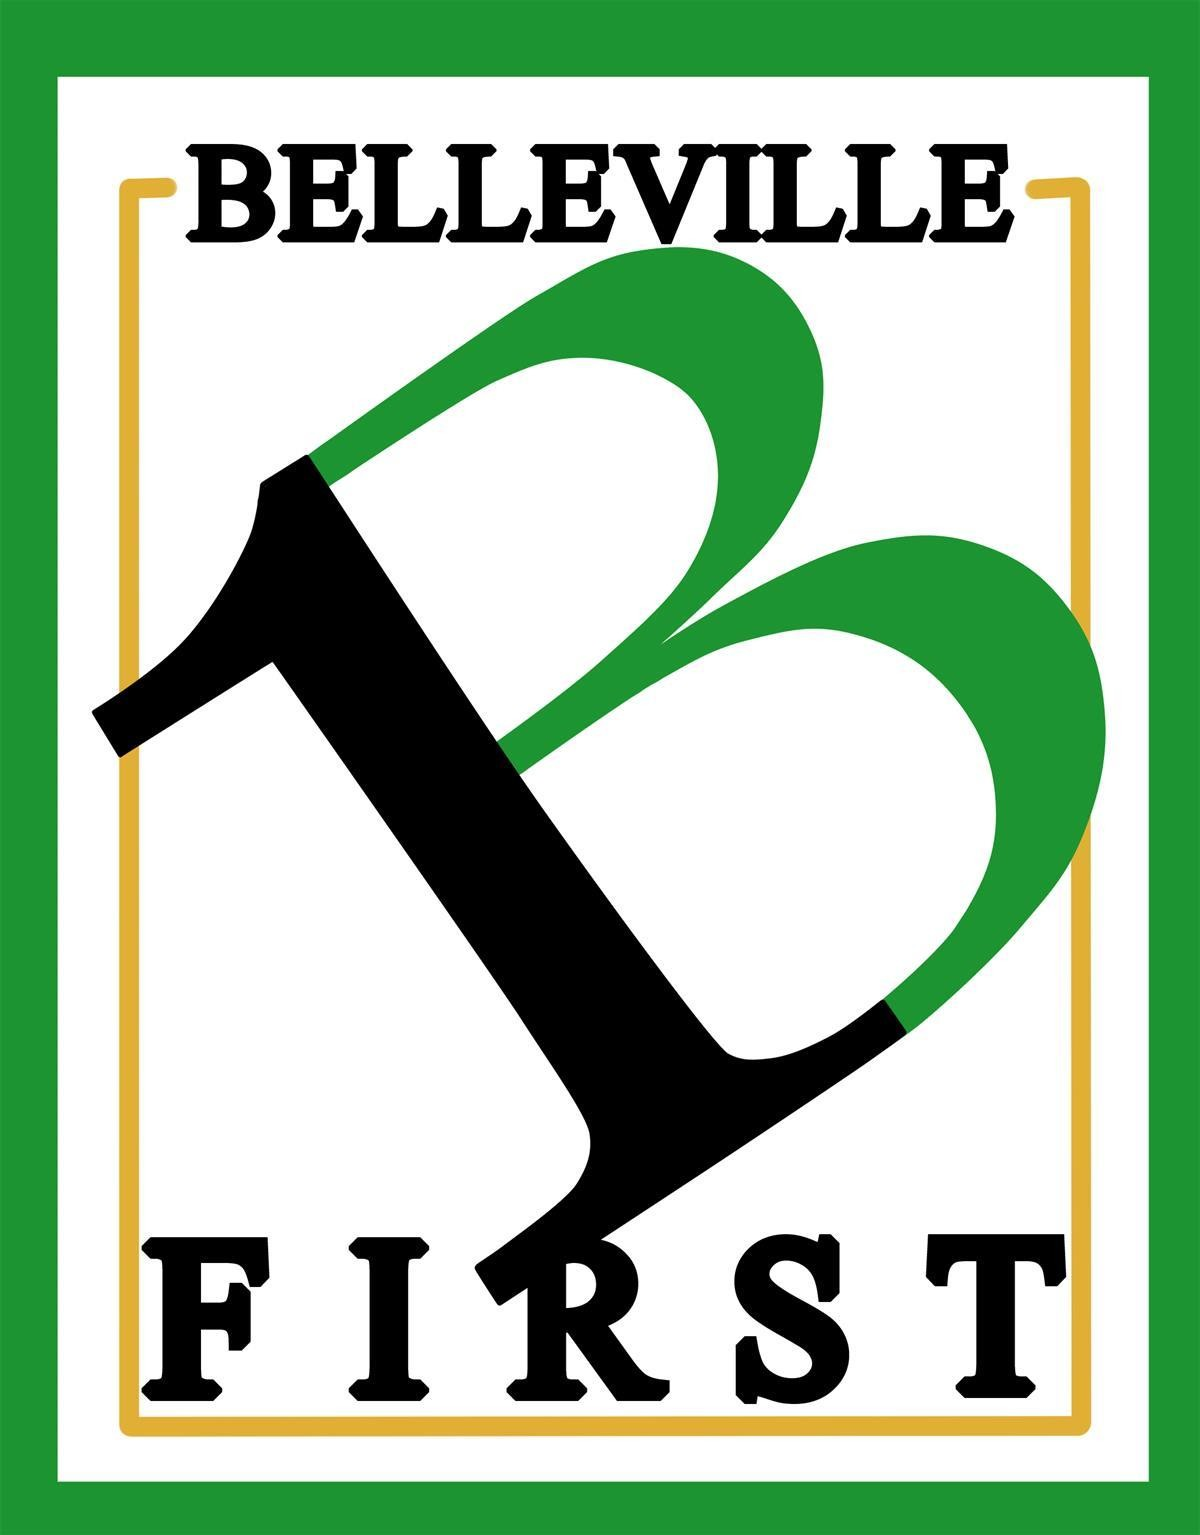 If You Hold One Of Our Belleville First Cards Feel Free To Use Them At Any Of The Merchants Listed Below To Receive A Discount When You Shop Belleville